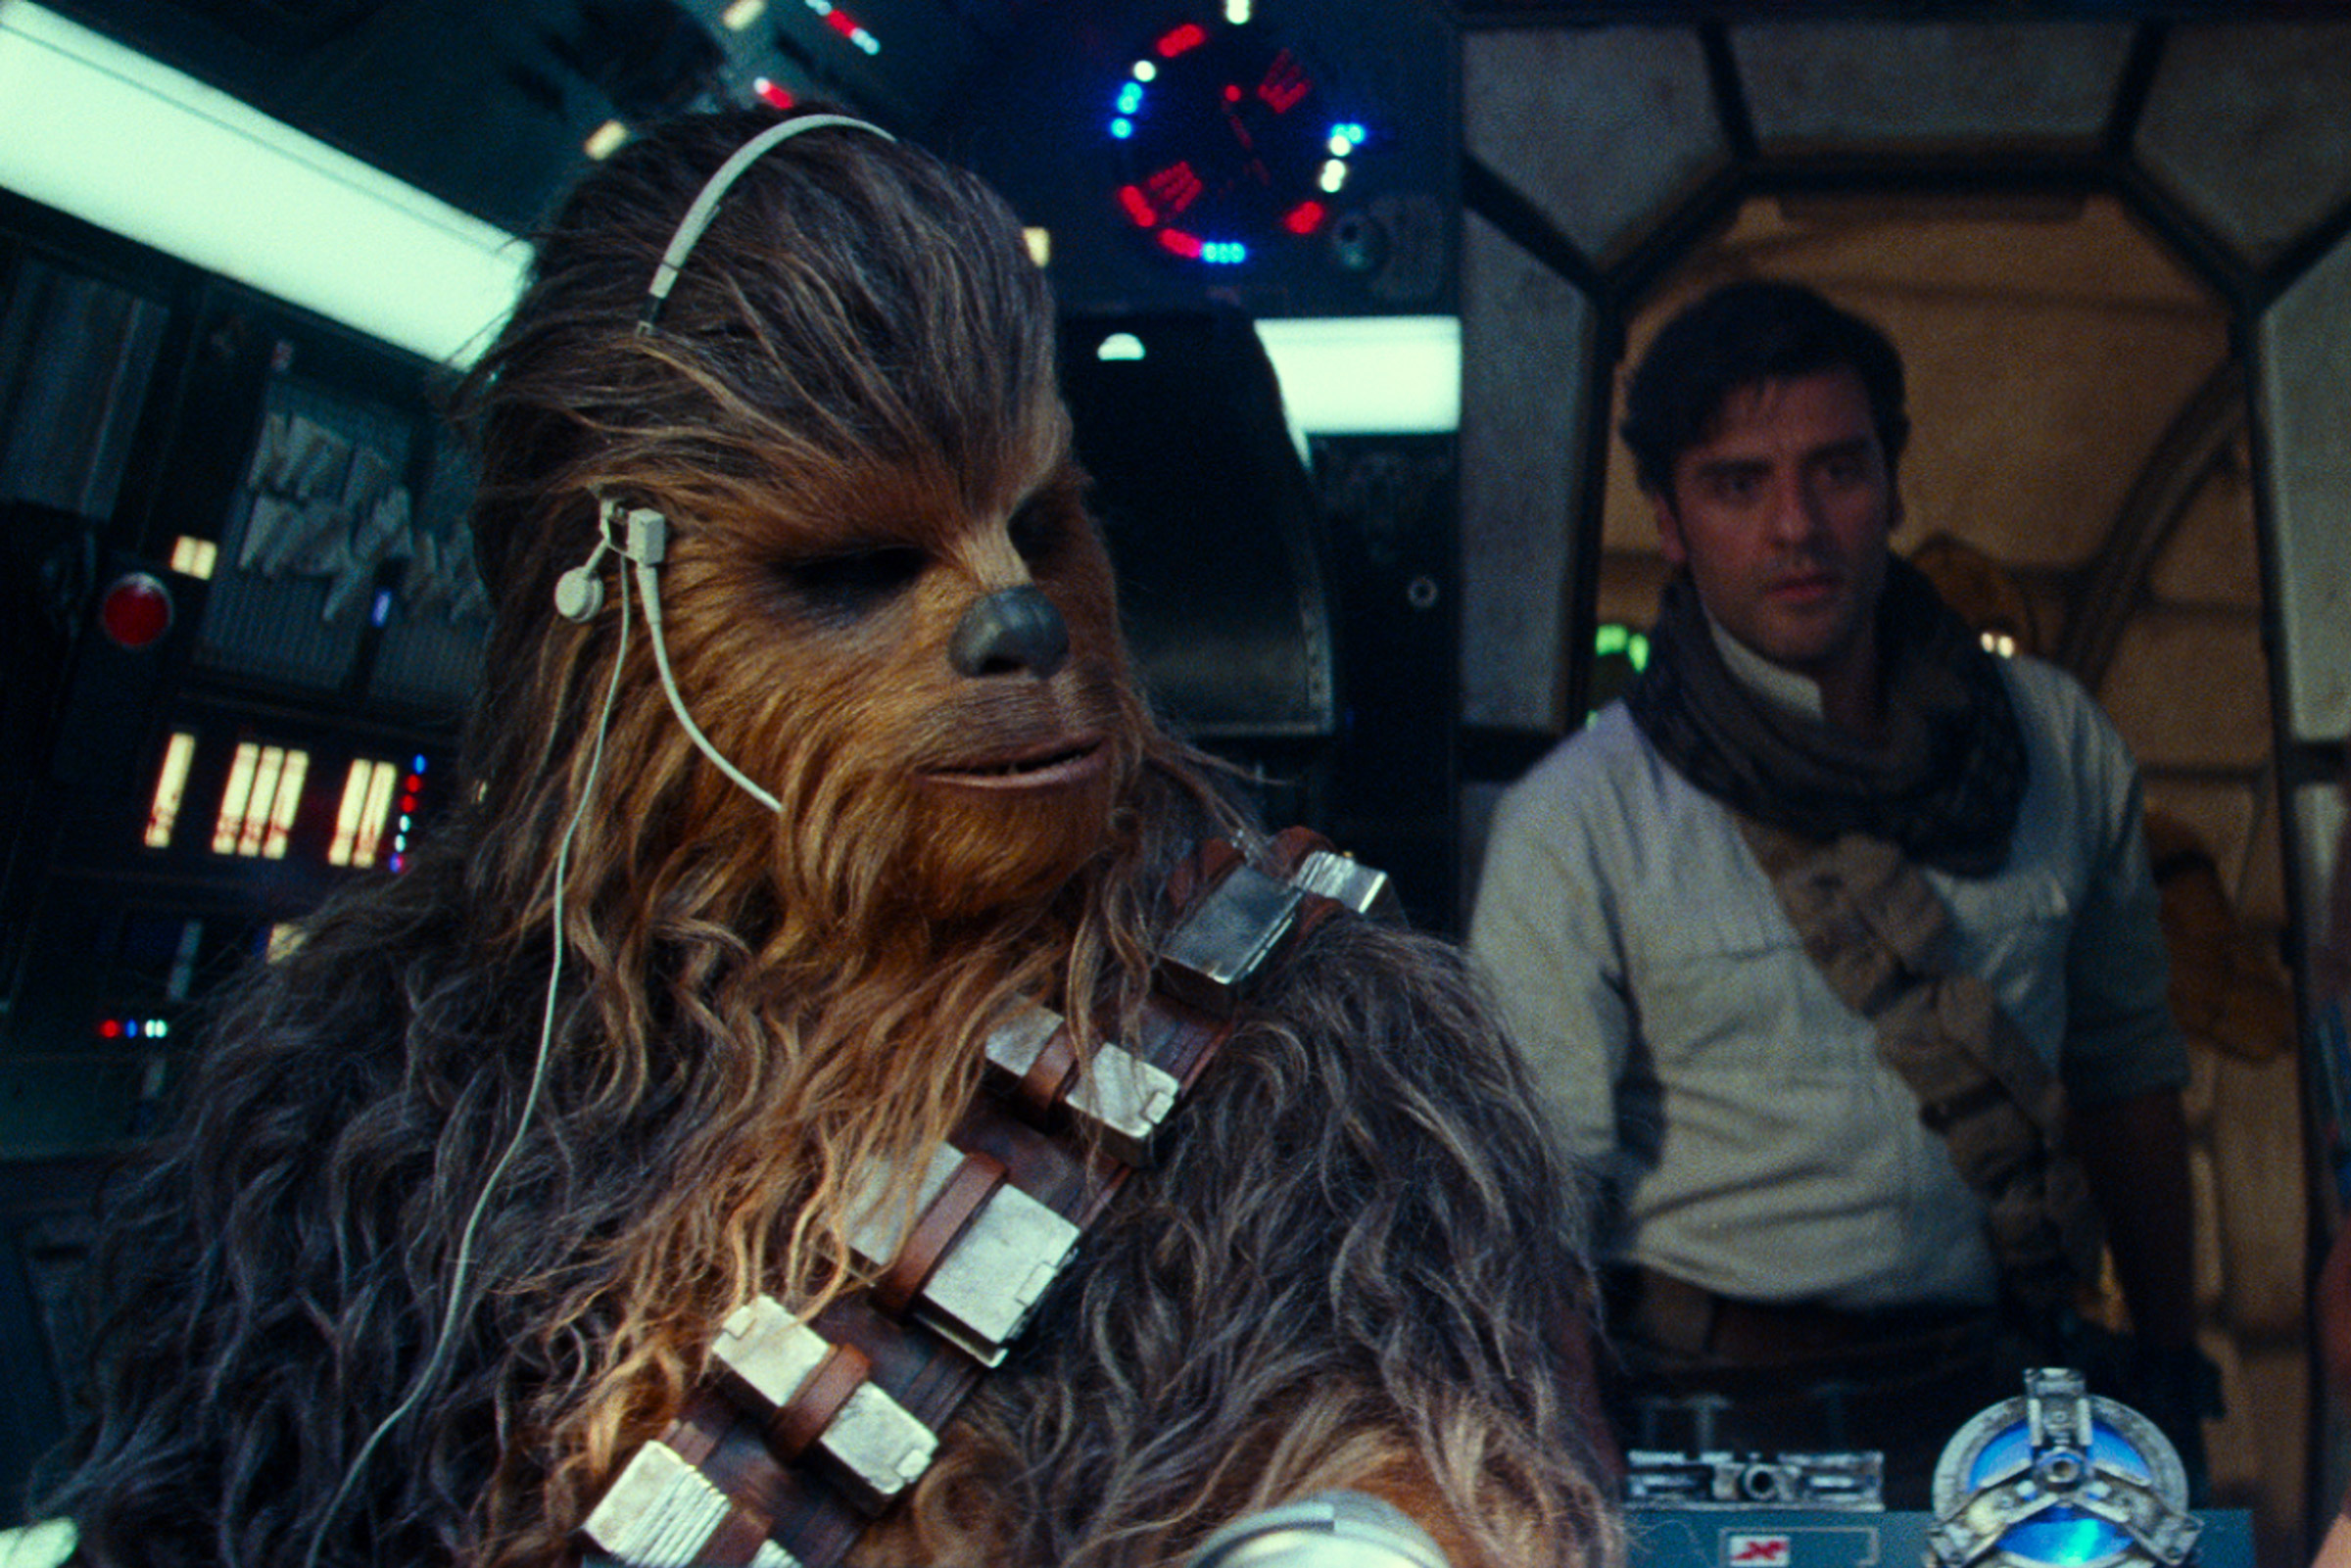 Chewbacca in Star Wars: The Rise of Skywalker